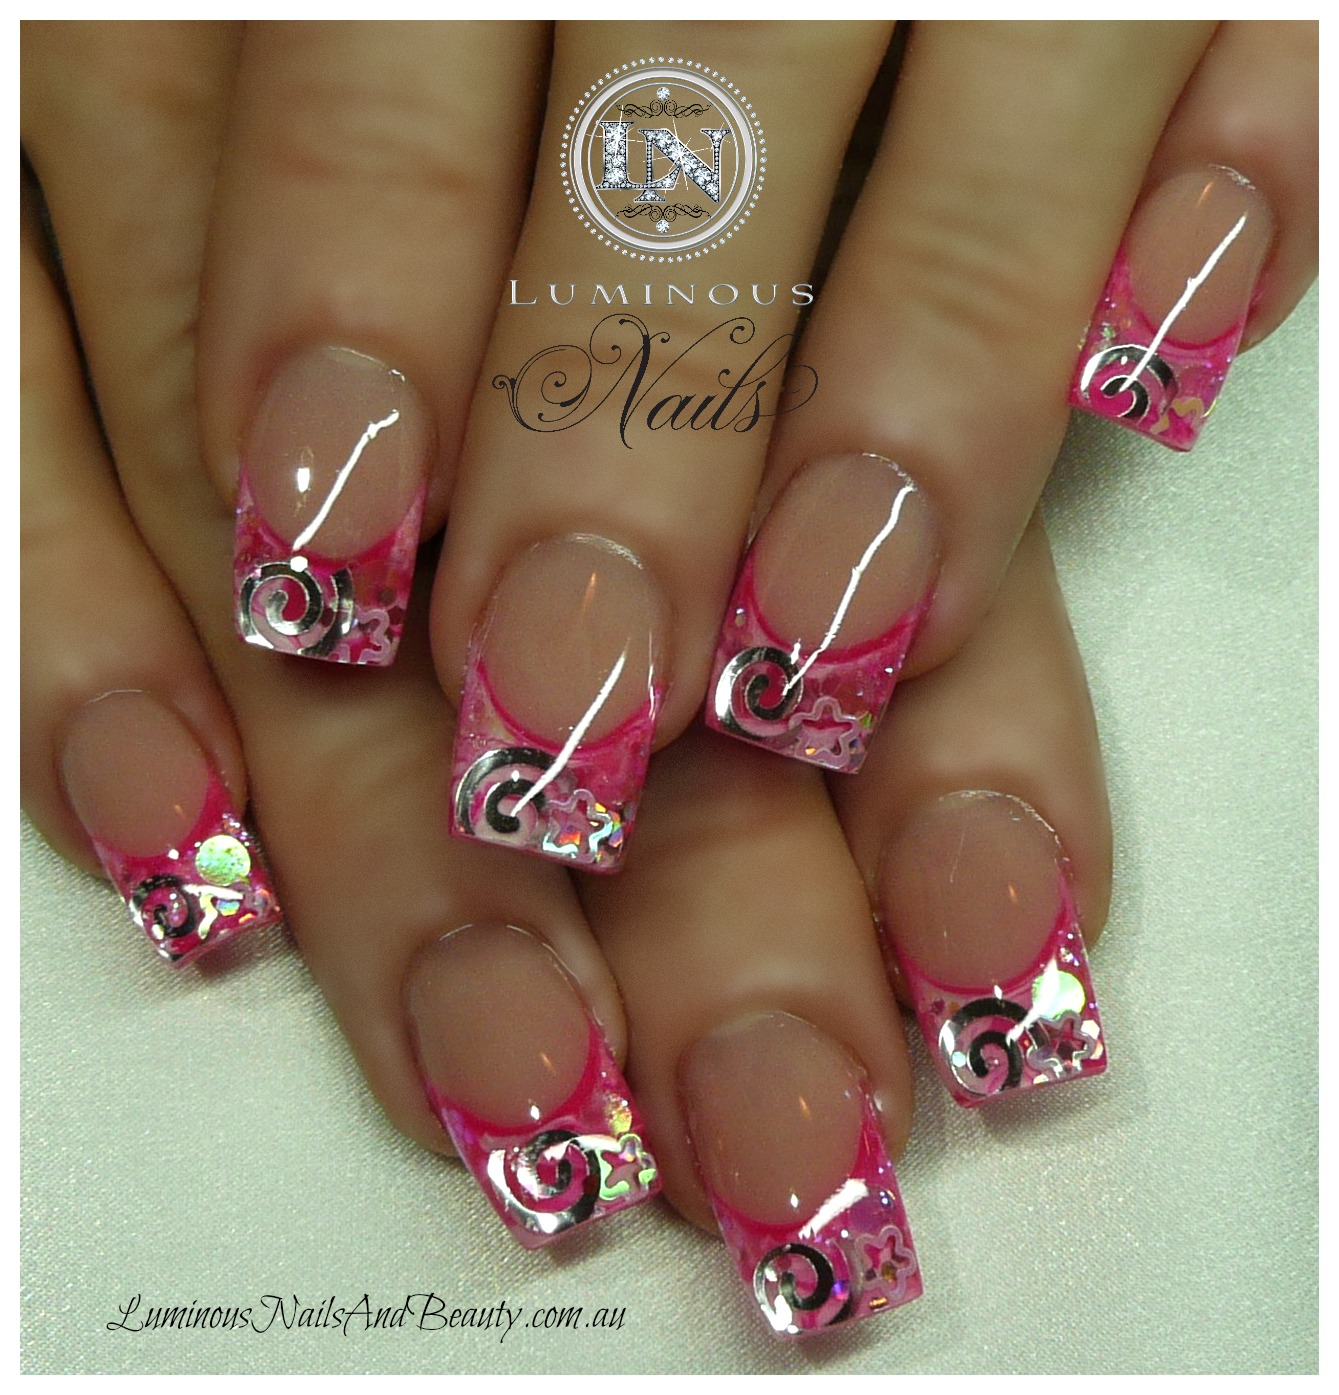 +Nails+And+Beauty,++Gold+Coast+Queensland.+Acrylic+Nails,+Gel+Nails